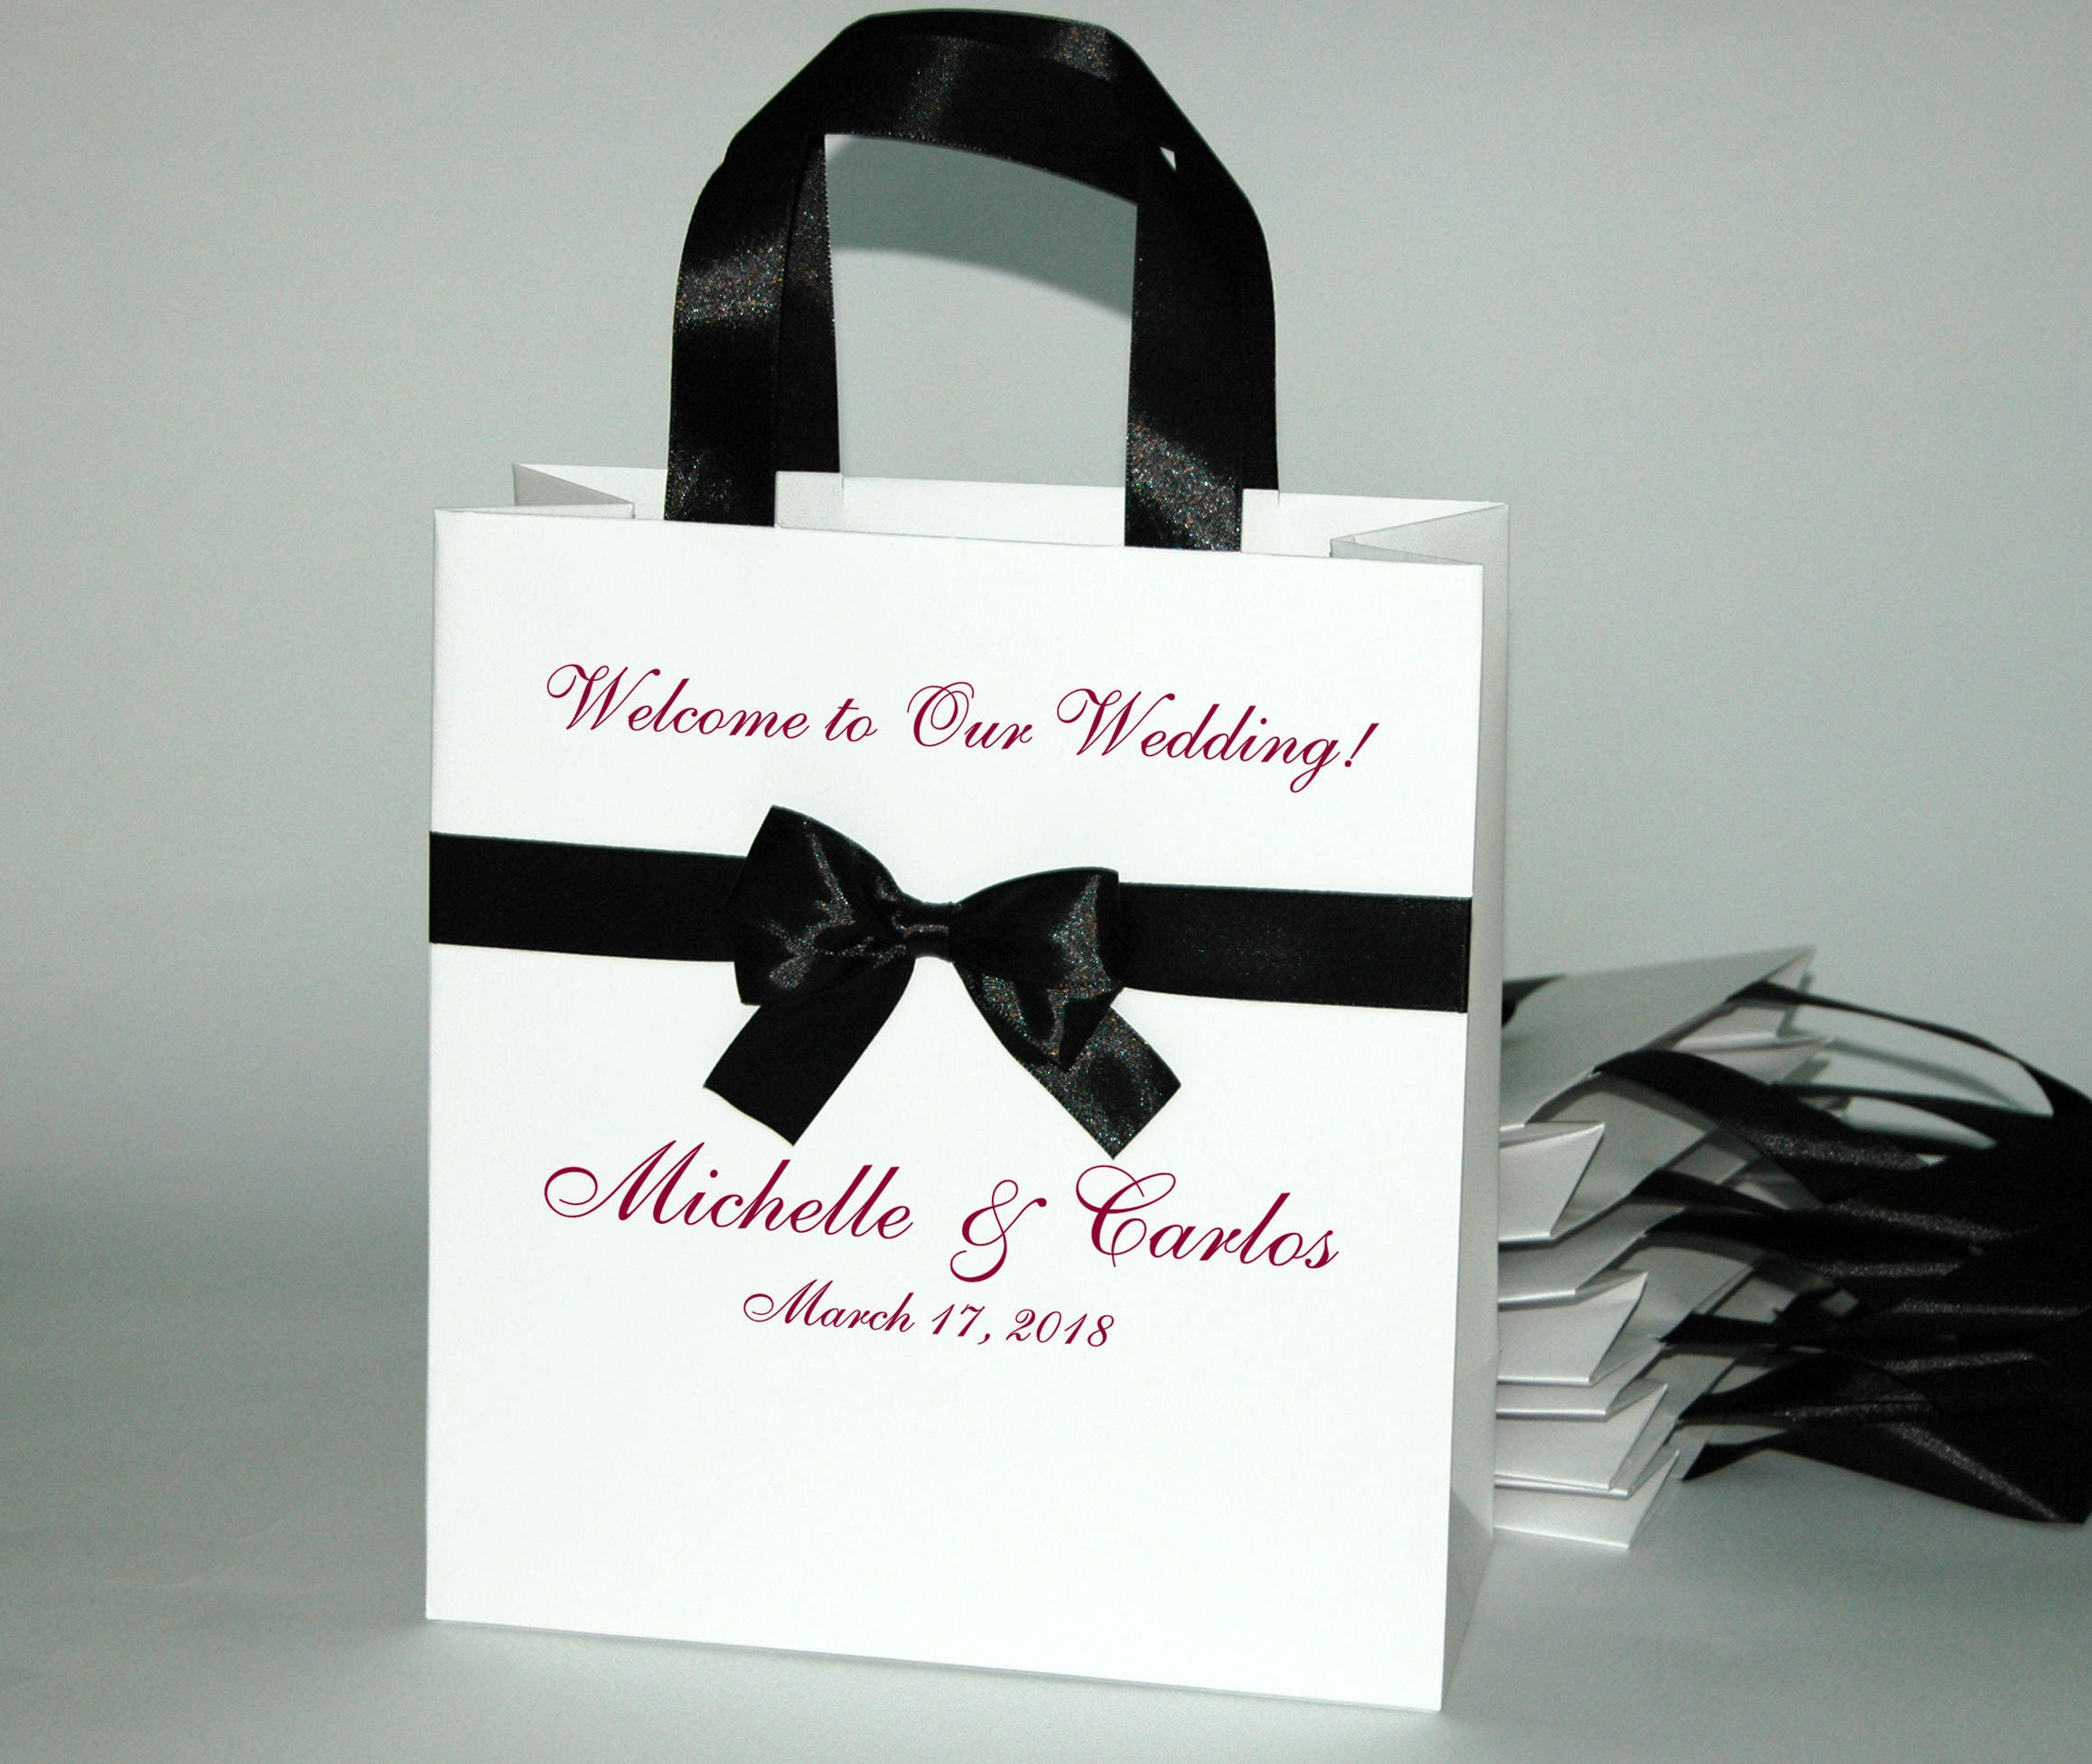 20 Wedding Welcome Bags with Black satin ribbon handles bow